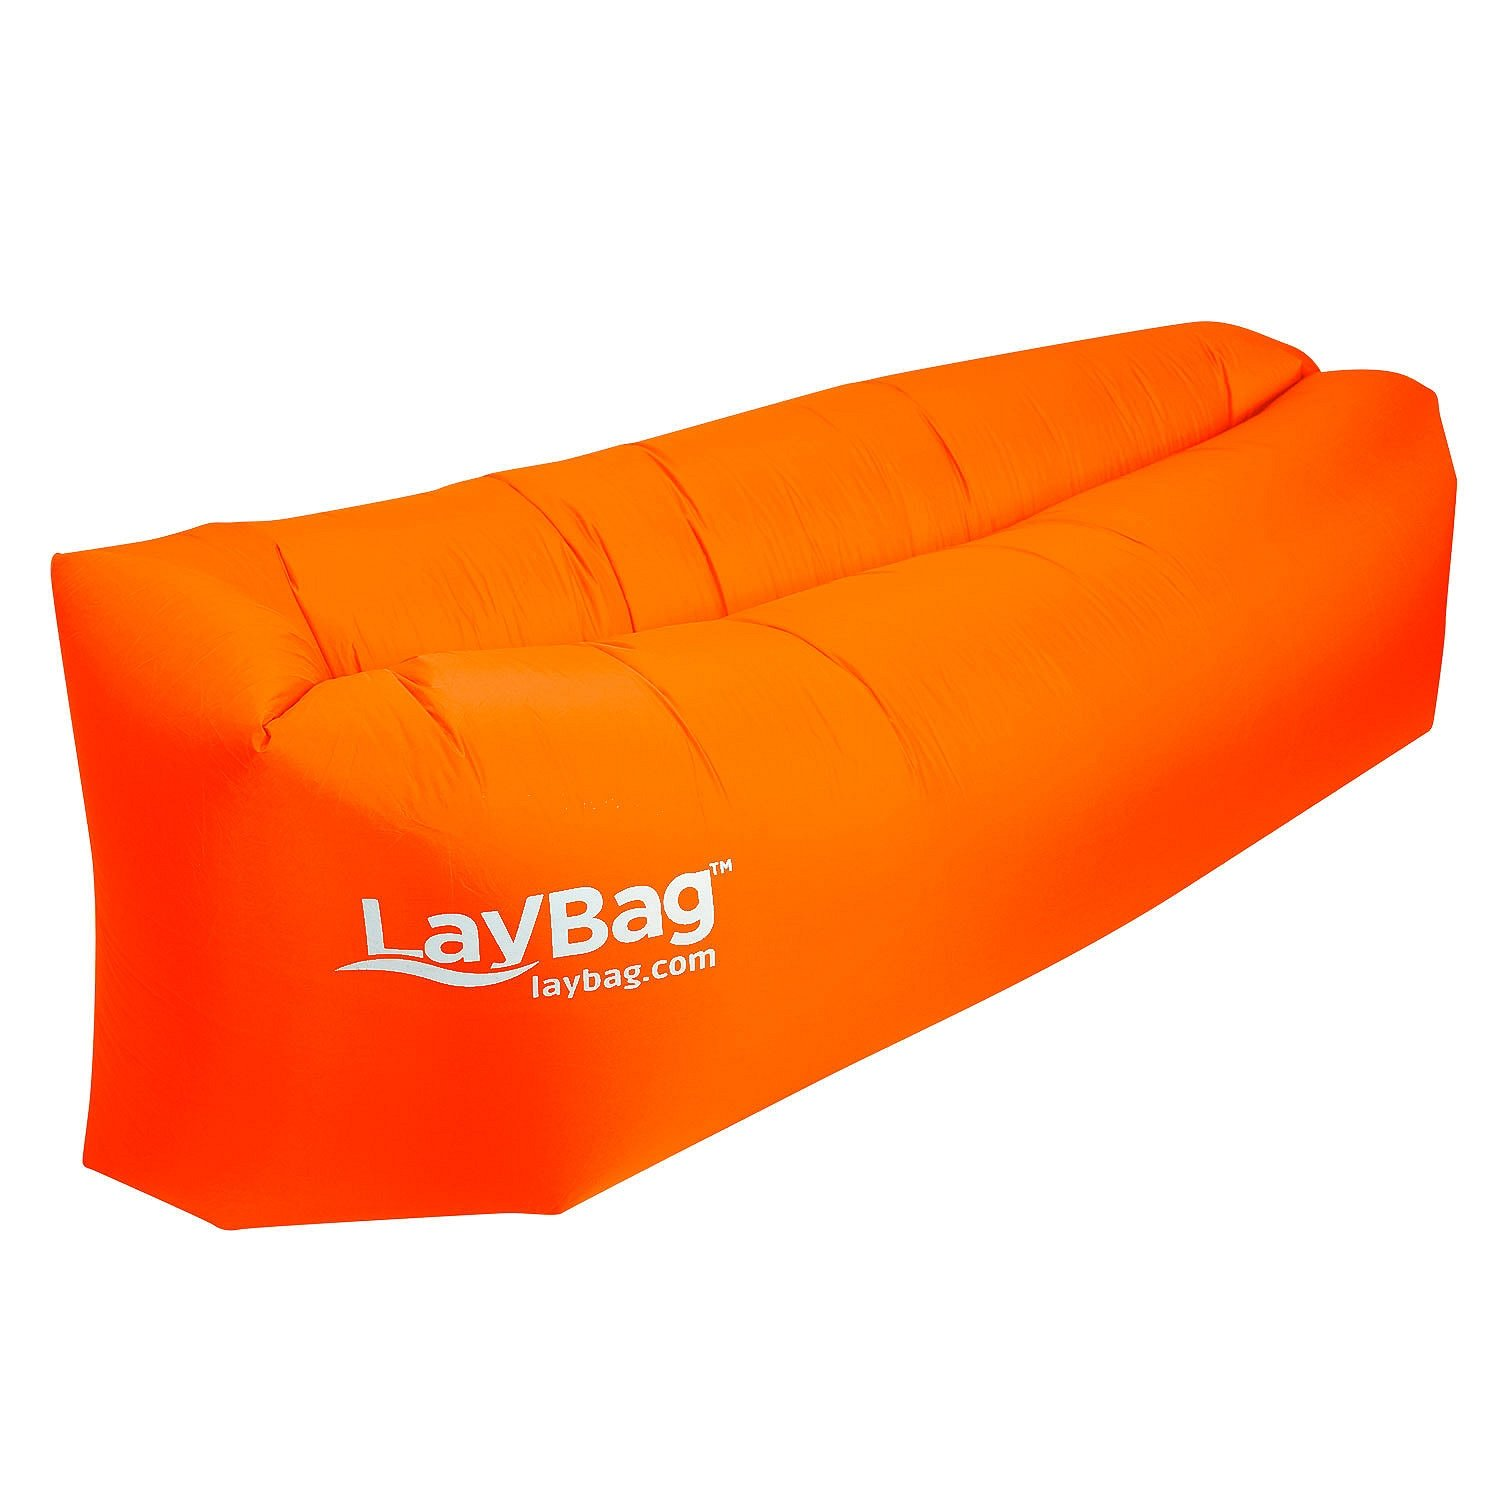 LayBag Inflatable Air Lounge, Clementine Orange